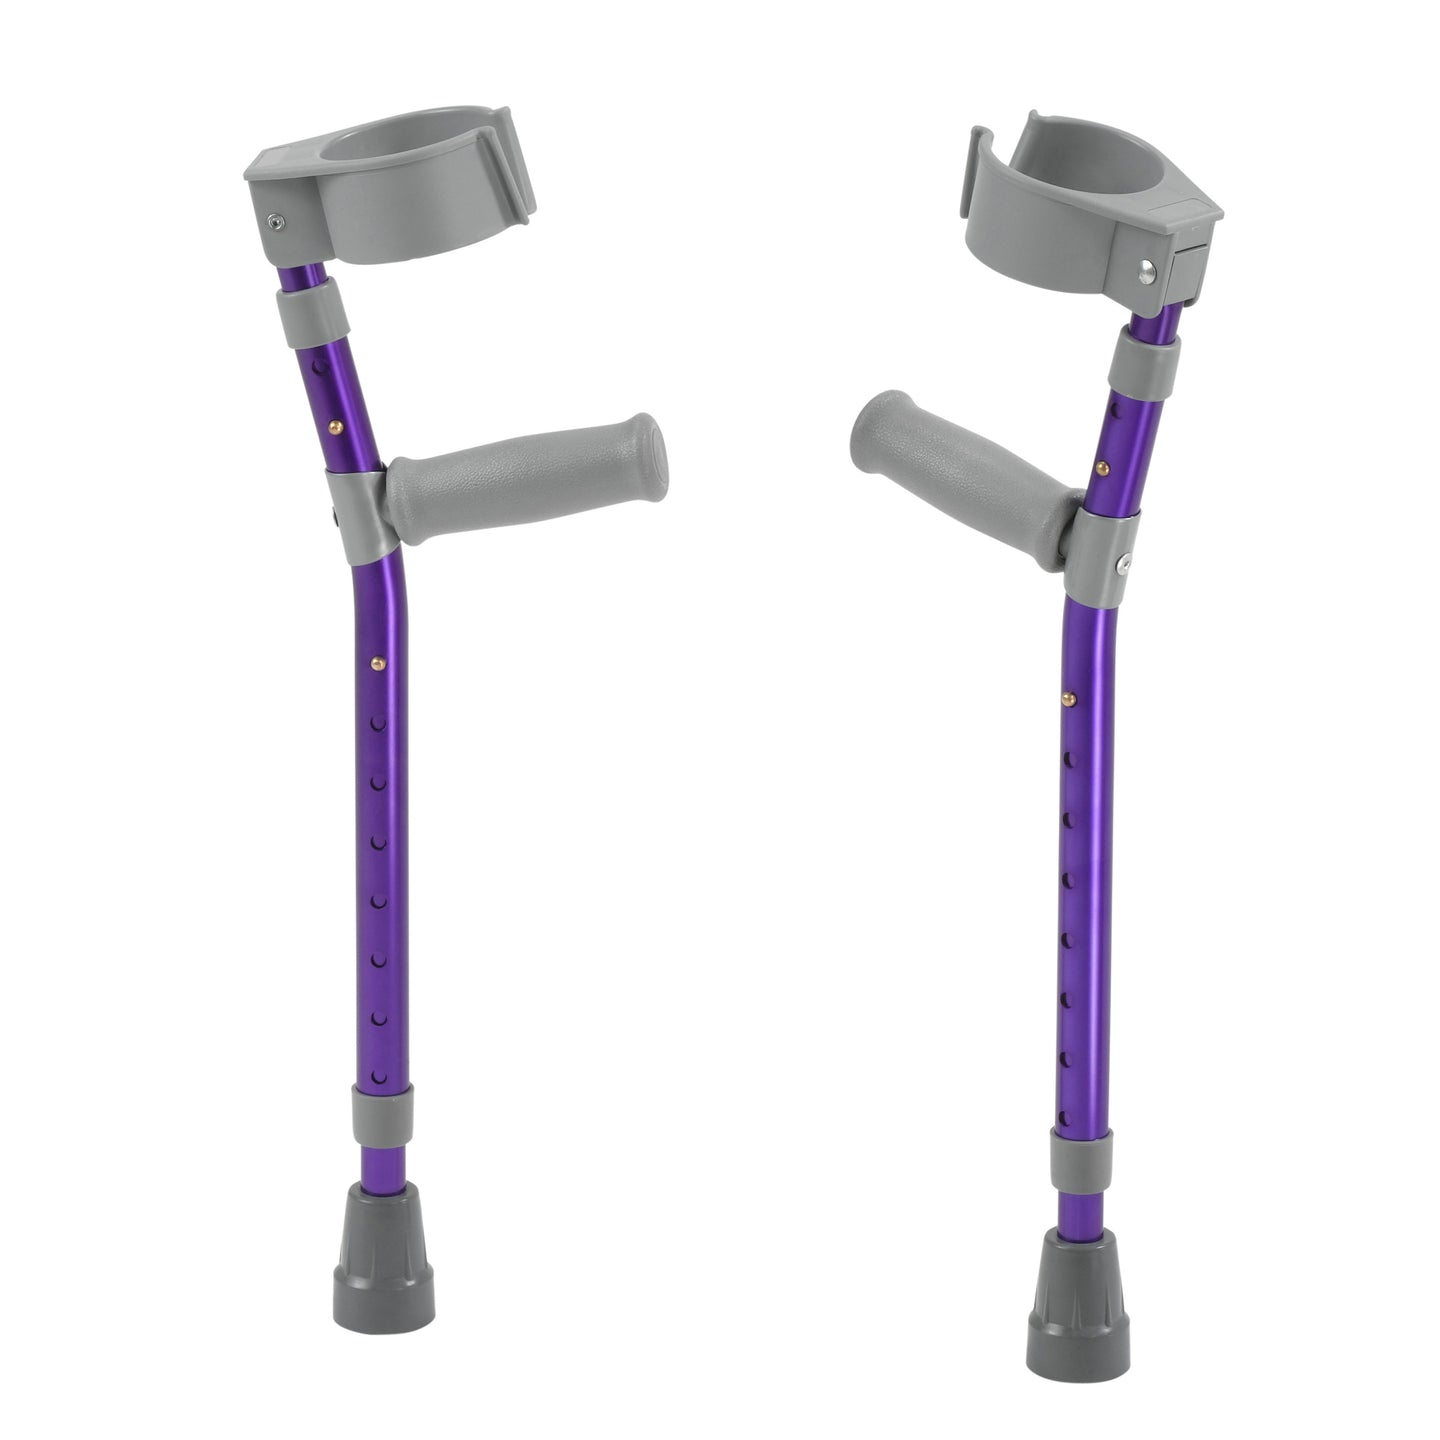 Drive Pediatric Forearm Crutches- Small- Wizard Purple- Pair